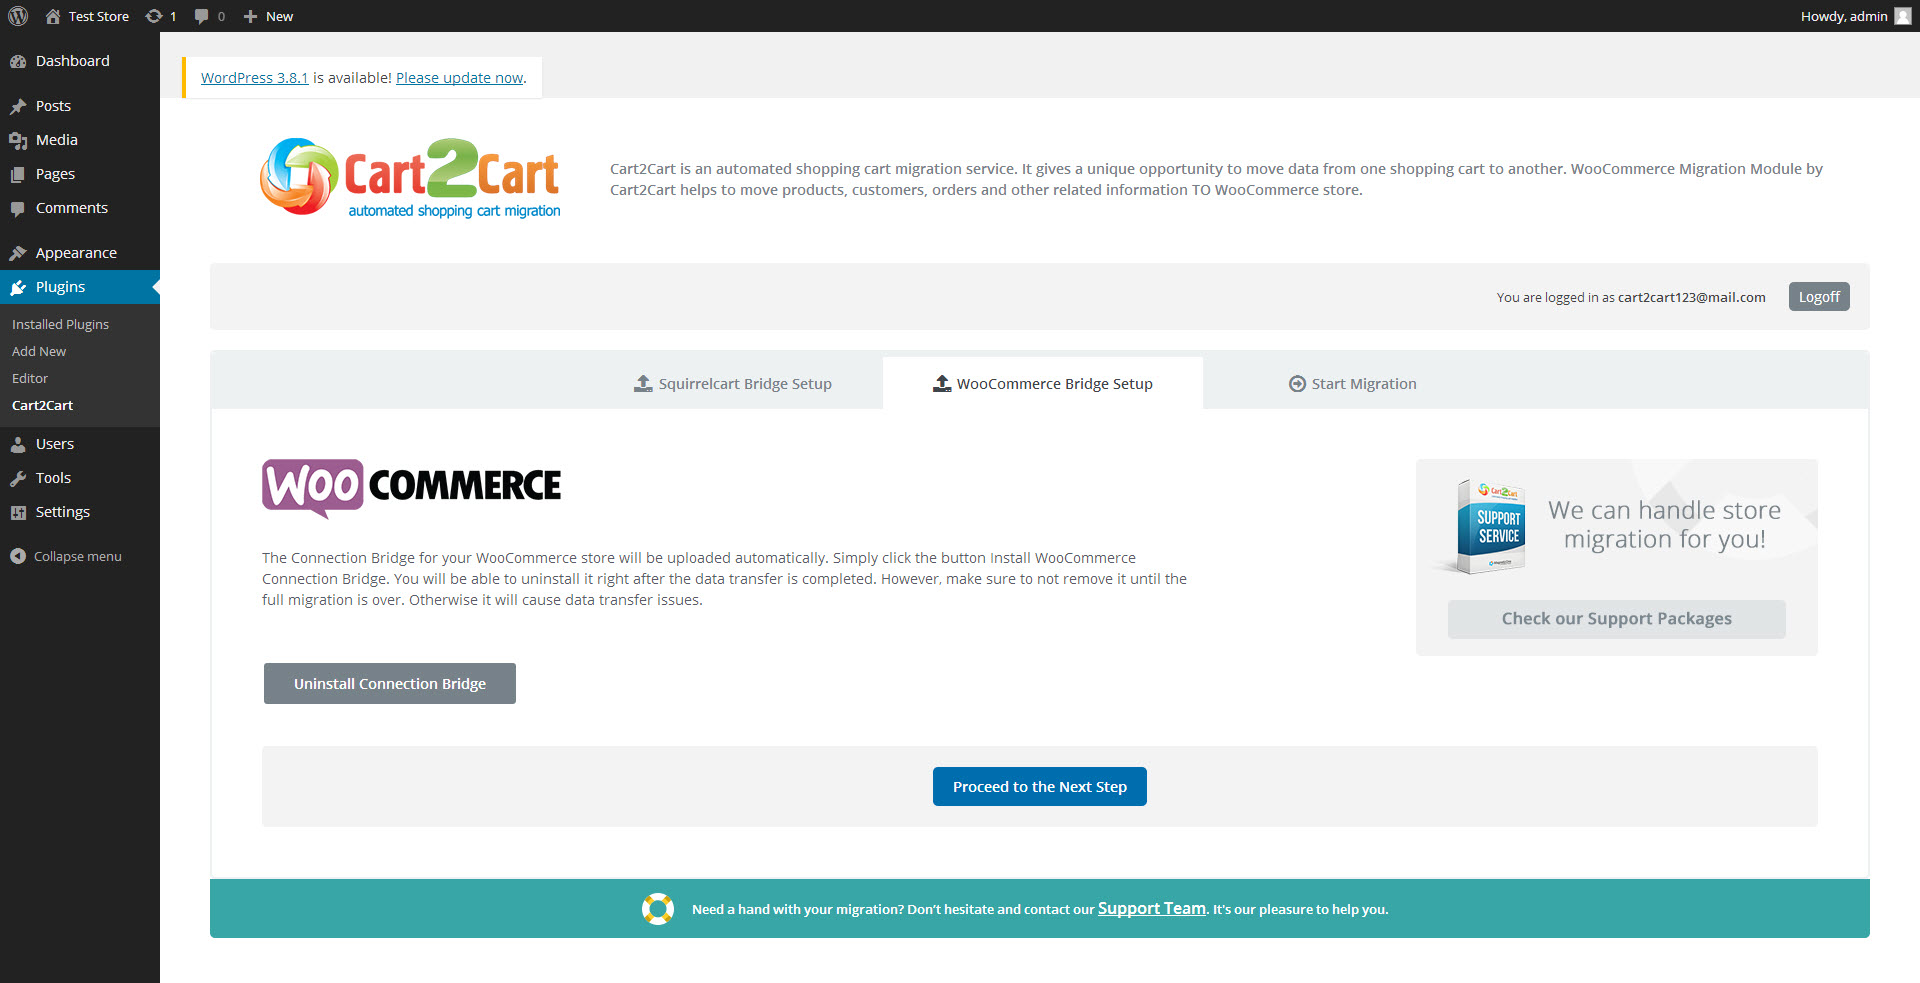 cart2cart-squirrelcart-to-woocommerce-migration screenshot 2